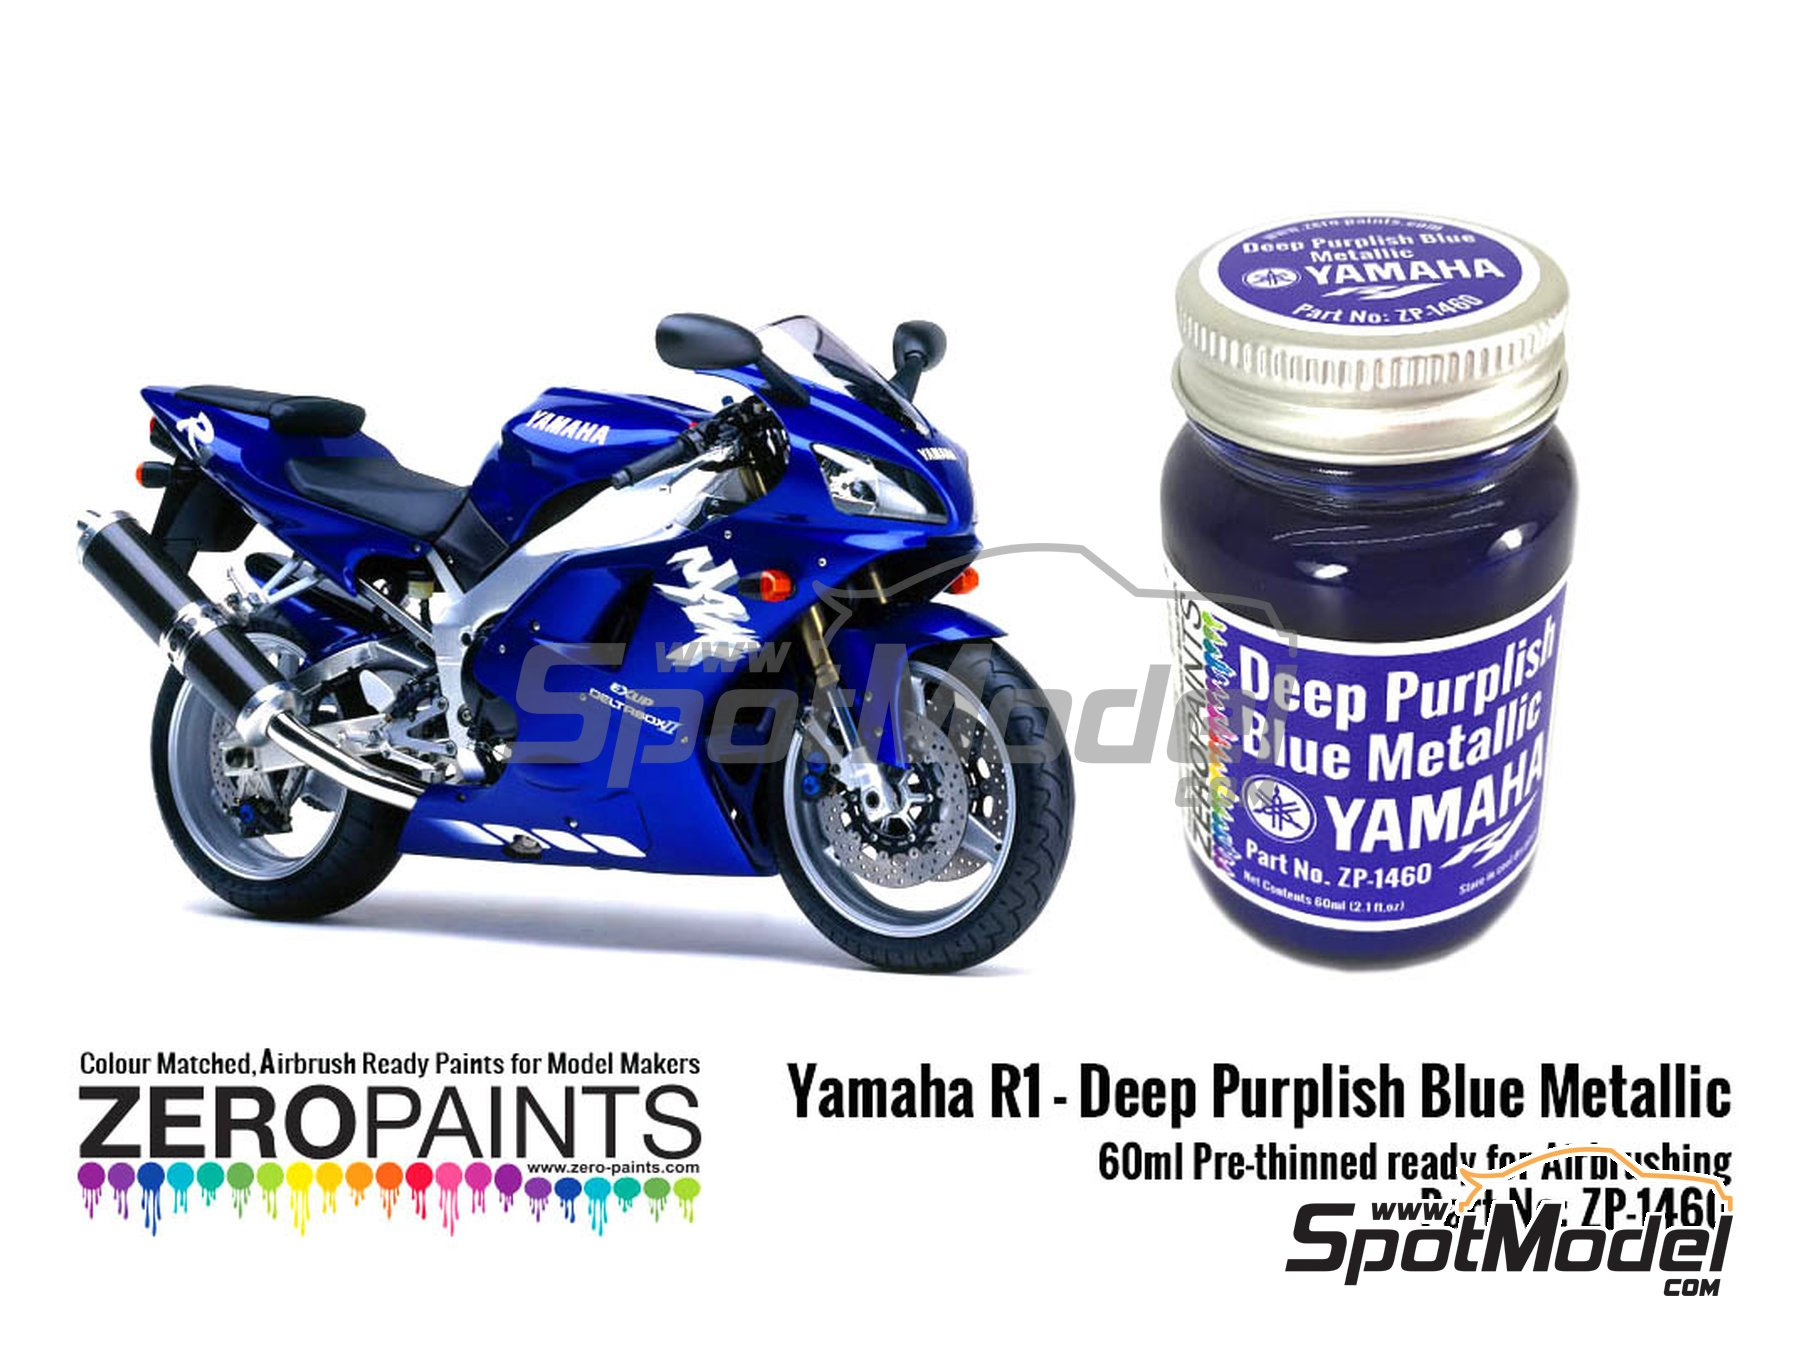 Image 1: Yamaha R1 Deep purplish blue metallic - 60ml | Paint manufactured by Zero Paints (ref. ZP-1460)